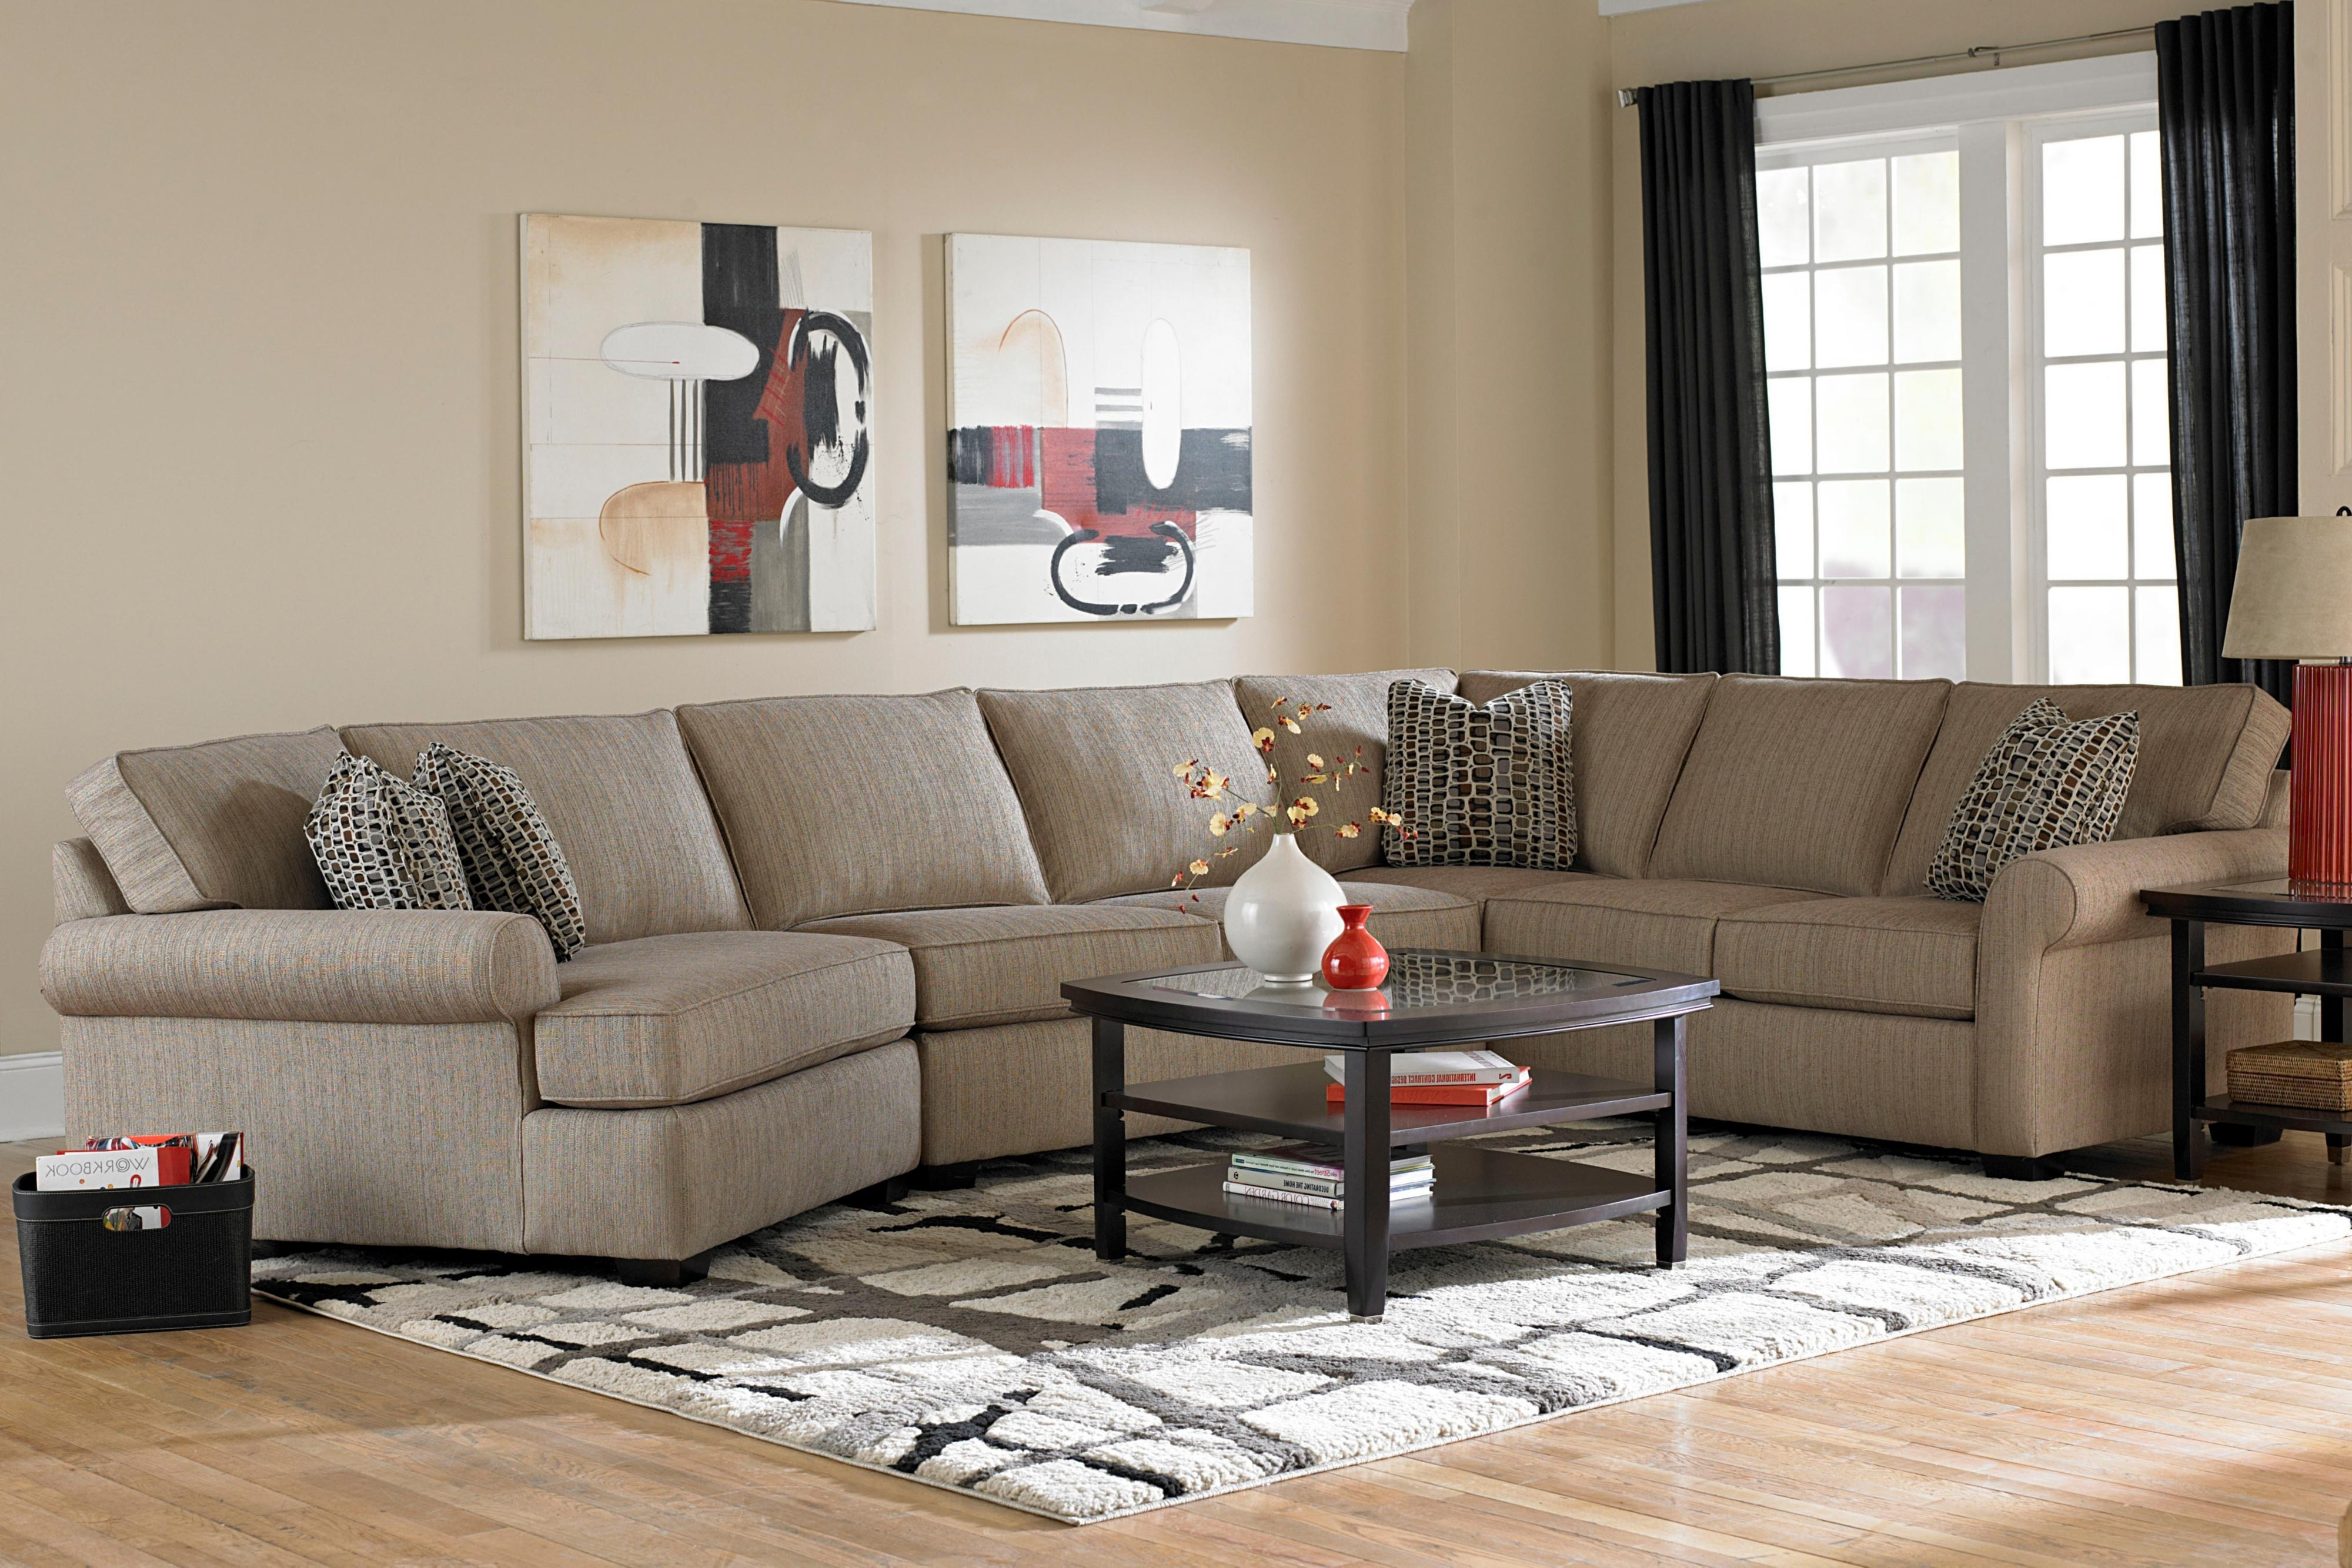 Broyhill Furniture Ethan Transitional Sectional Sofa With Right With Favorite El Paso Tx Sectional Sofas (View 3 of 20)